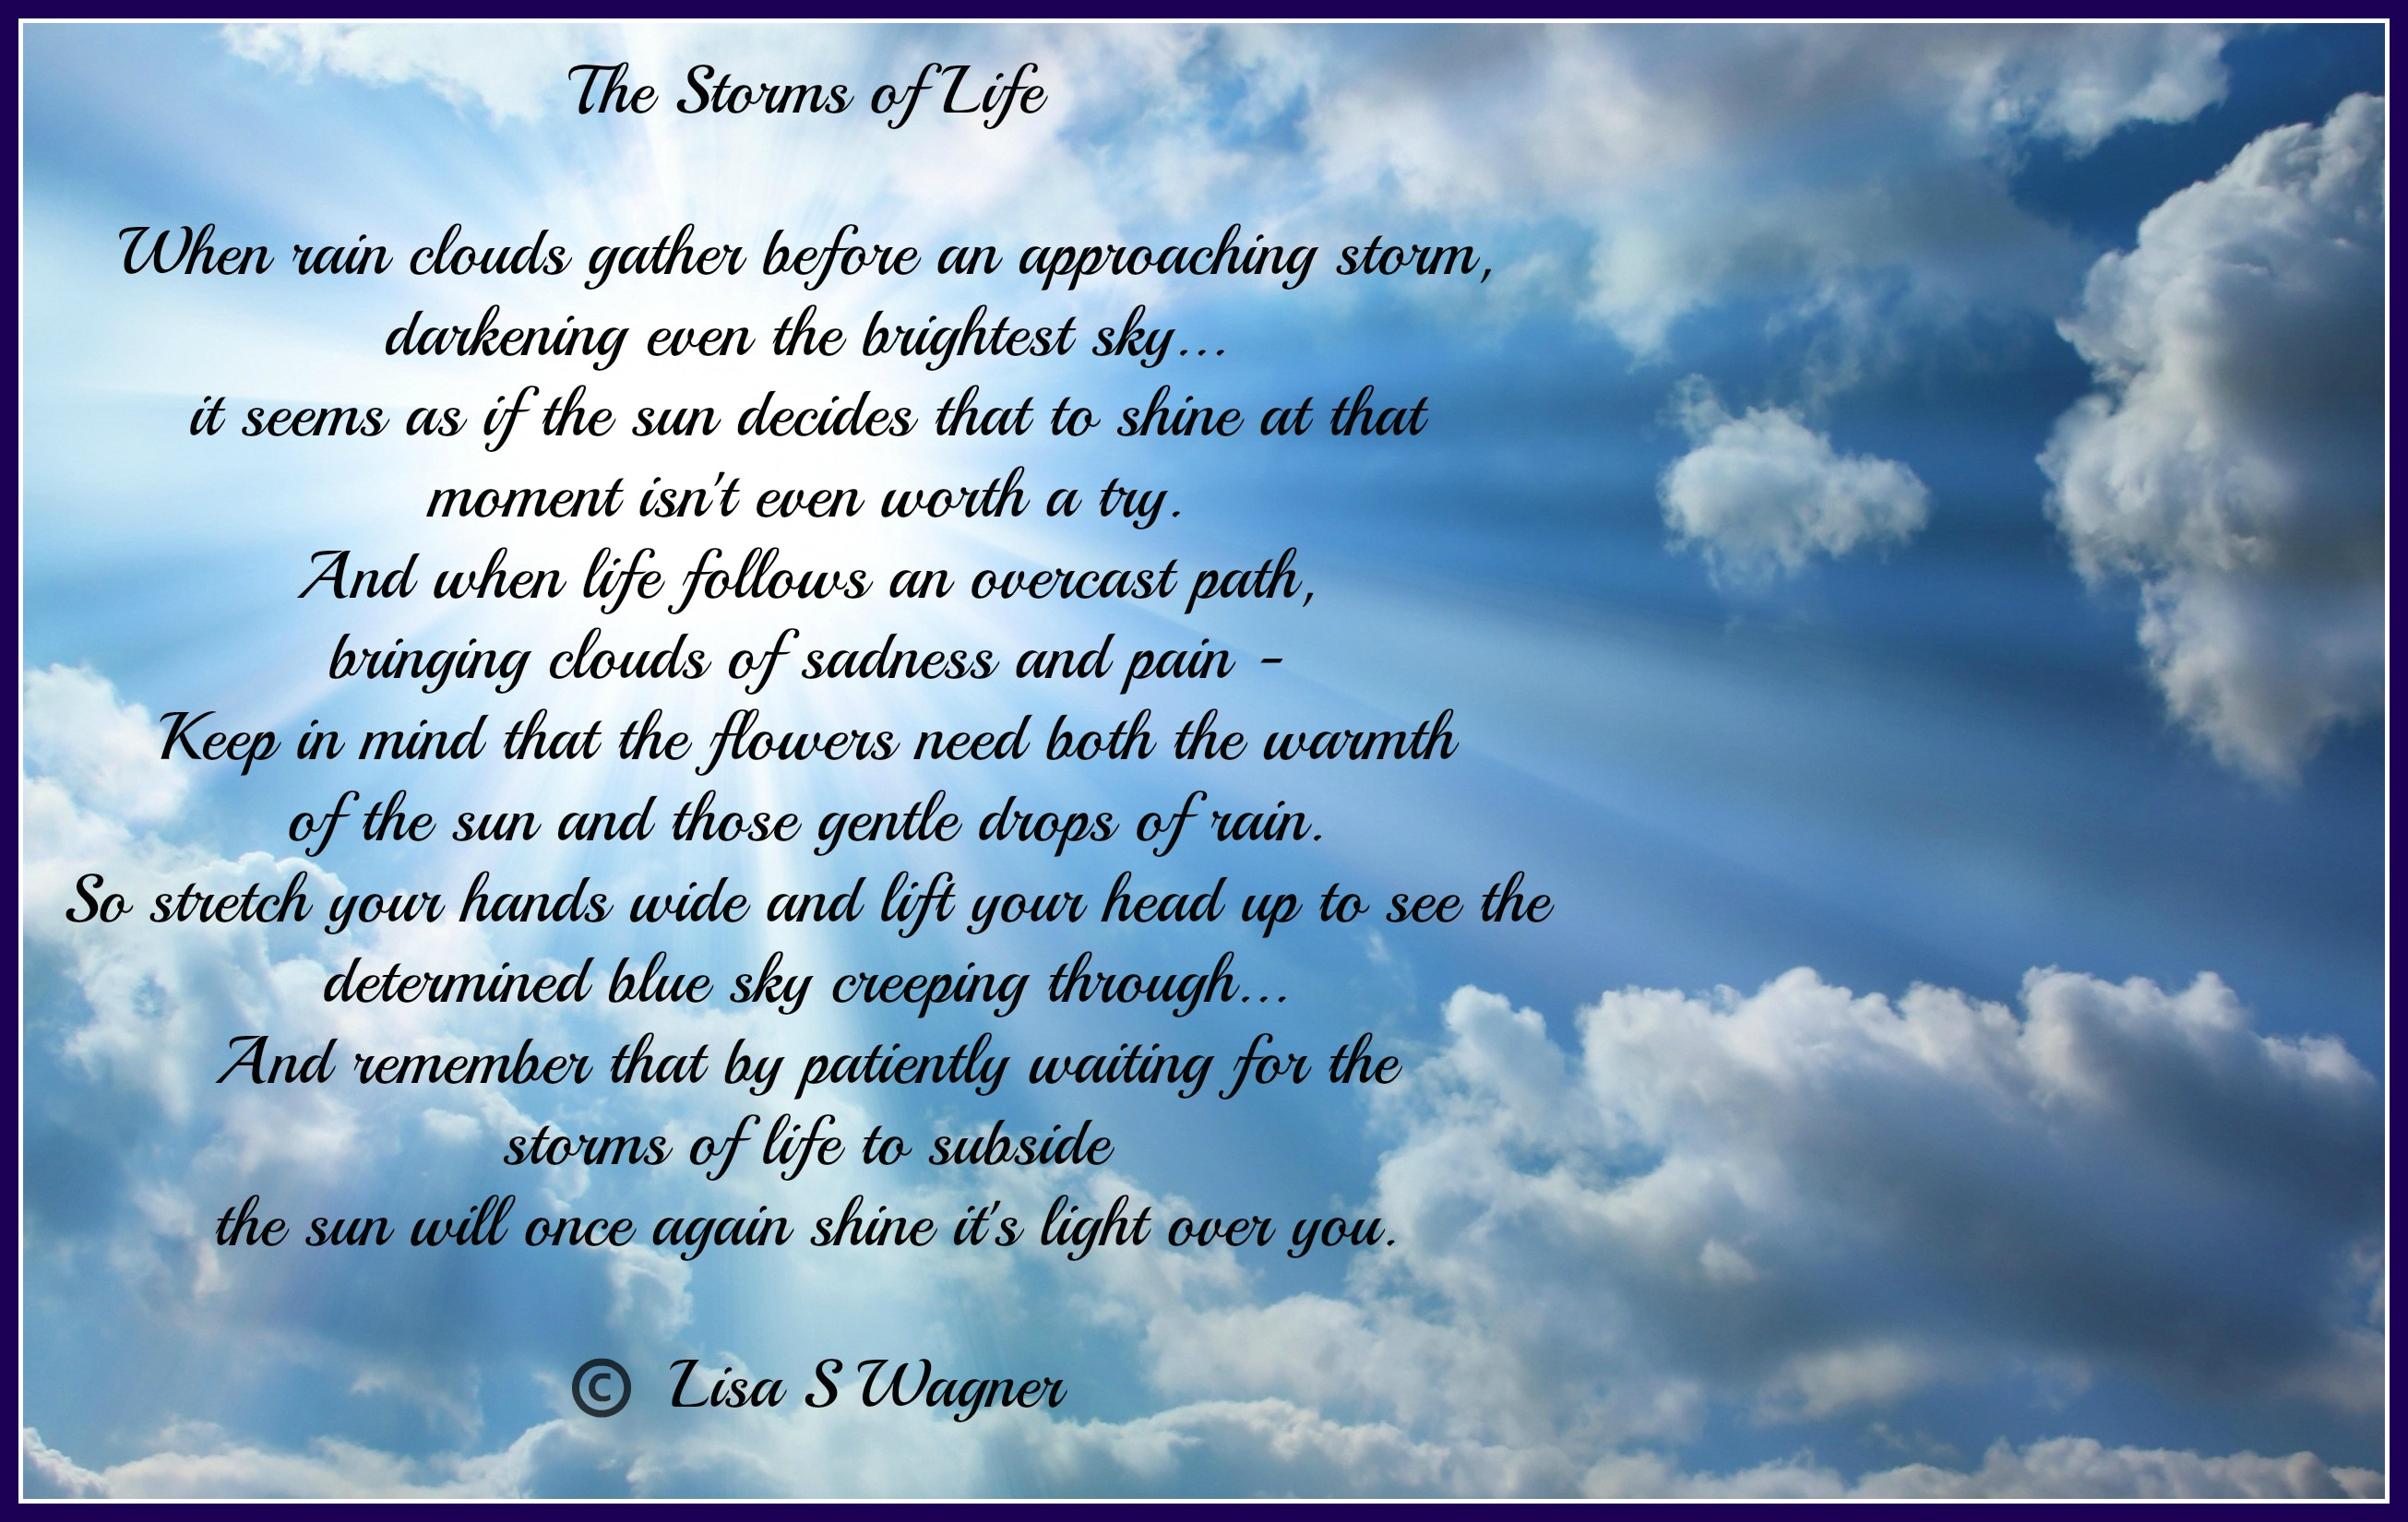 Poems And Quotes About Life The Storms Of Life  Support For Oscar Pistorius